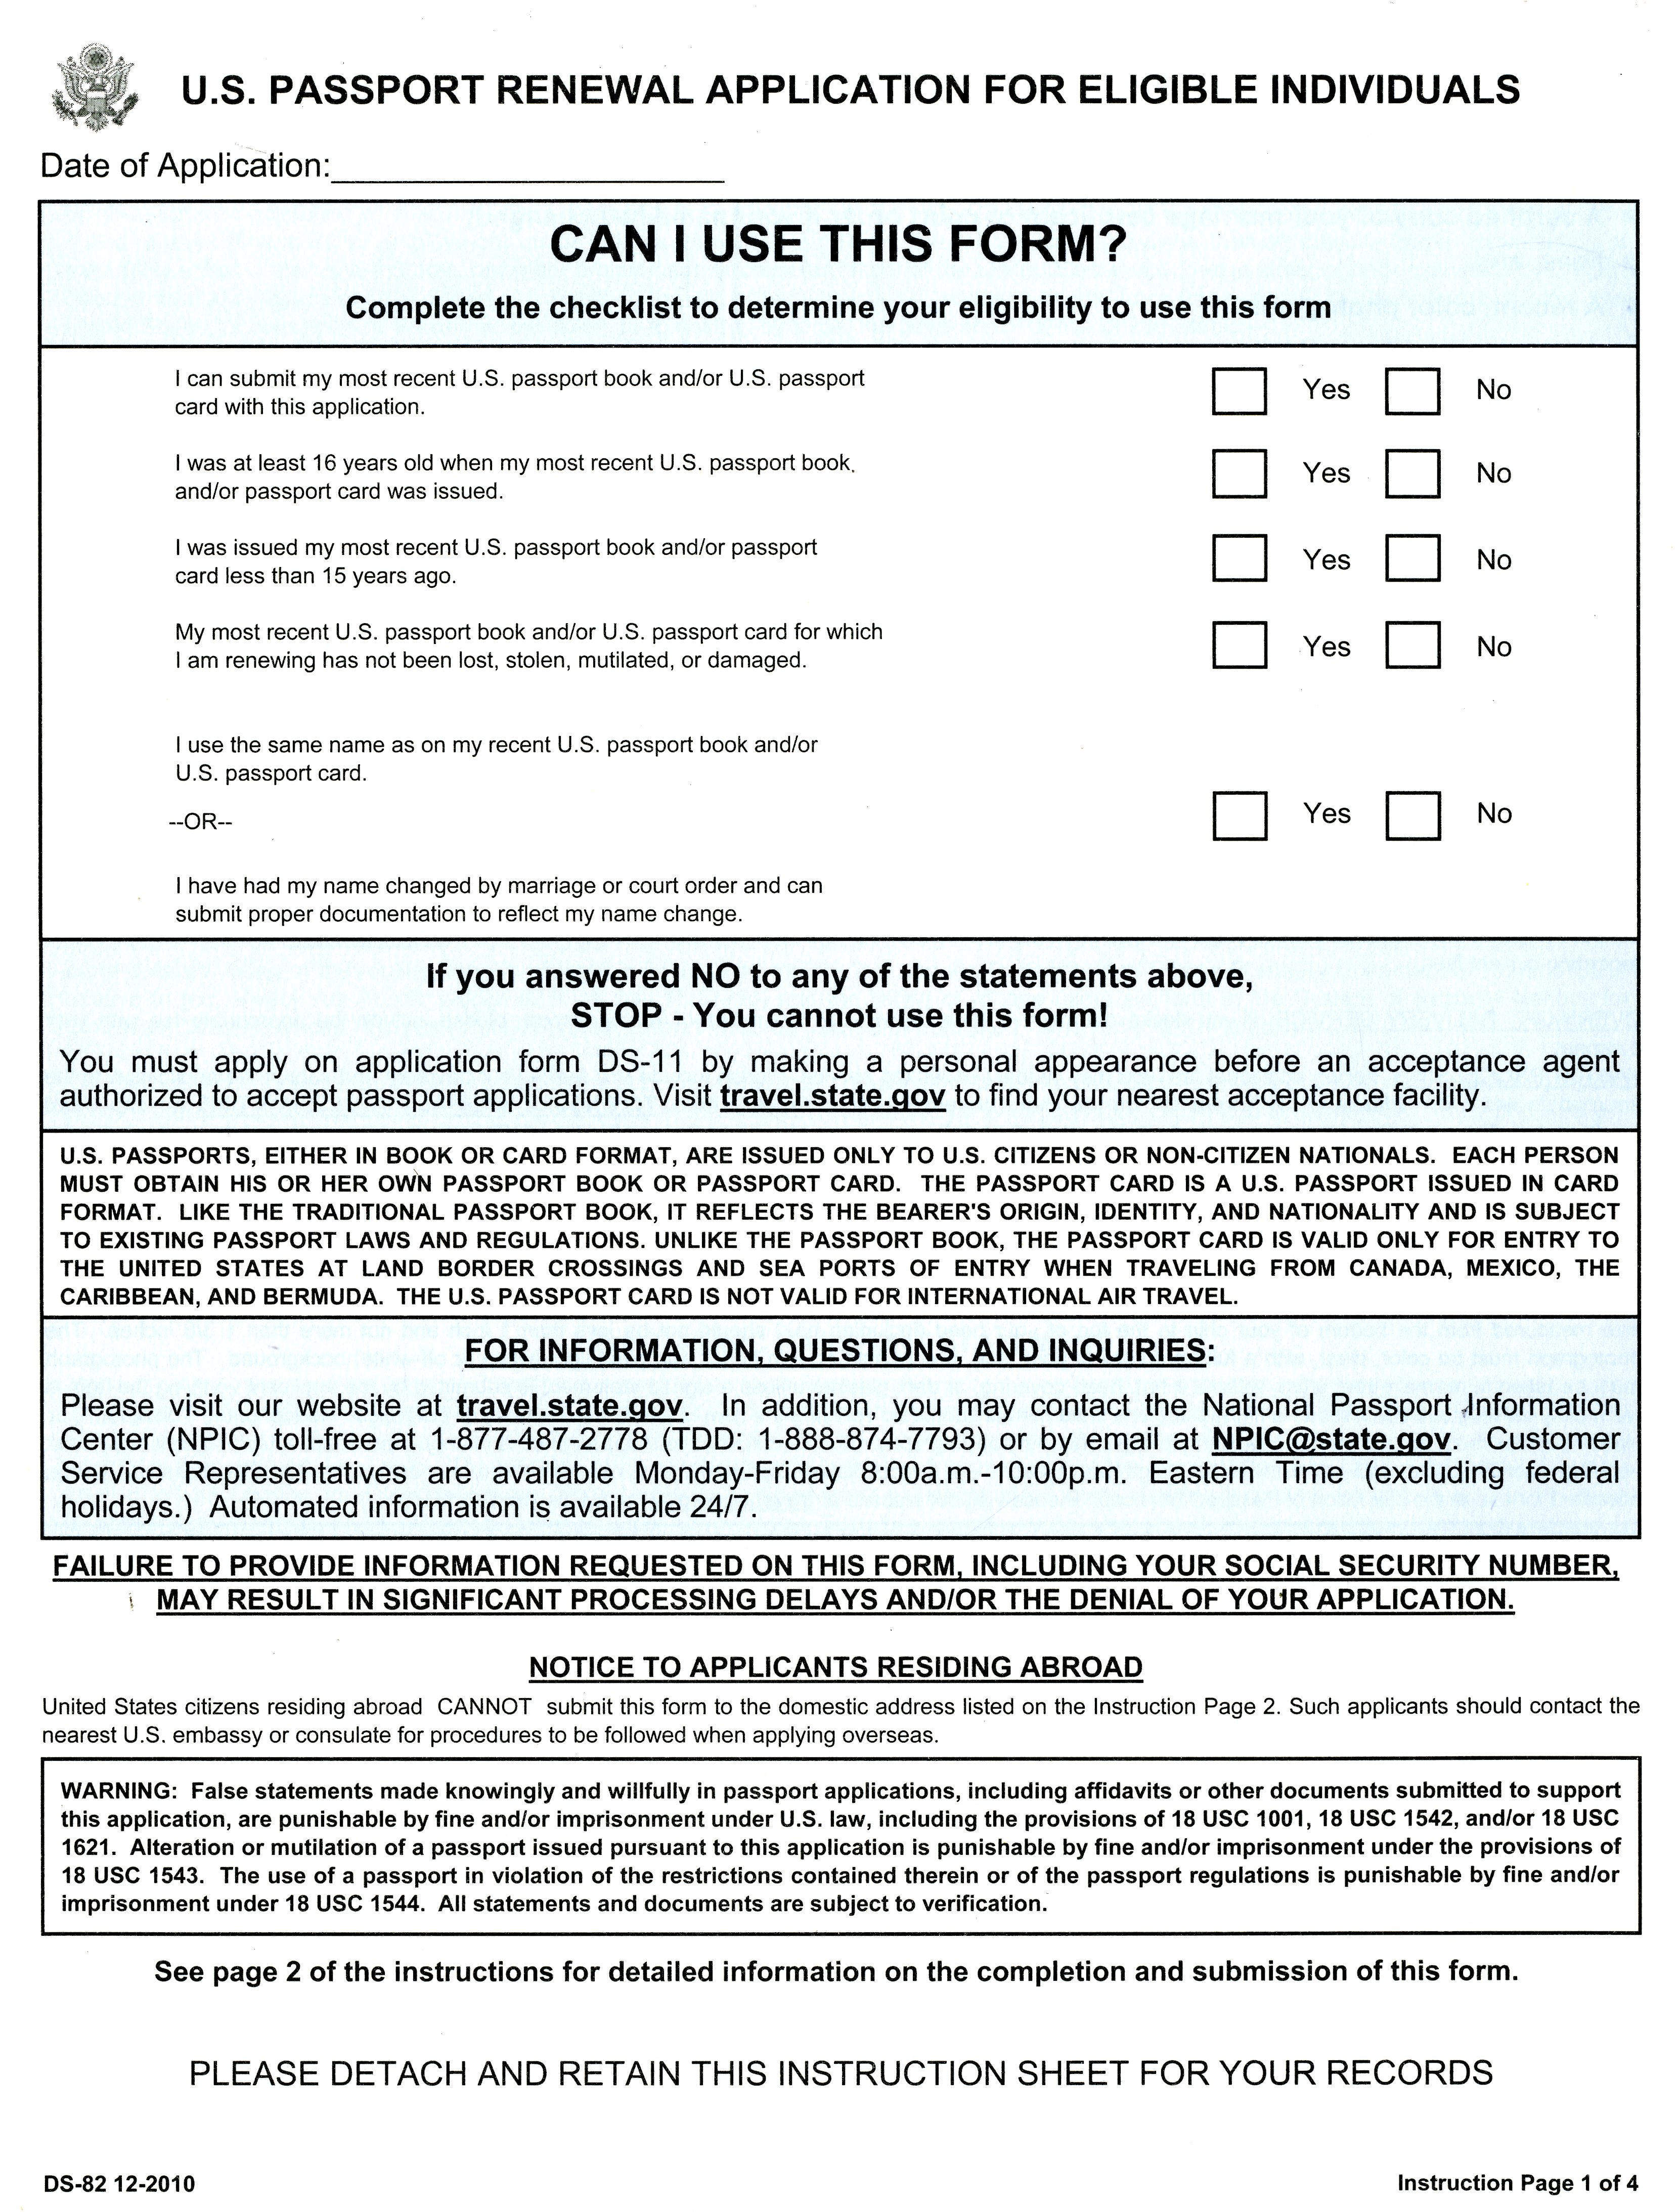 Awesome U.S. Passport Renewal Application For Eligible Individuals, Form DS 82  (2010) | U.S. Government Bookstore